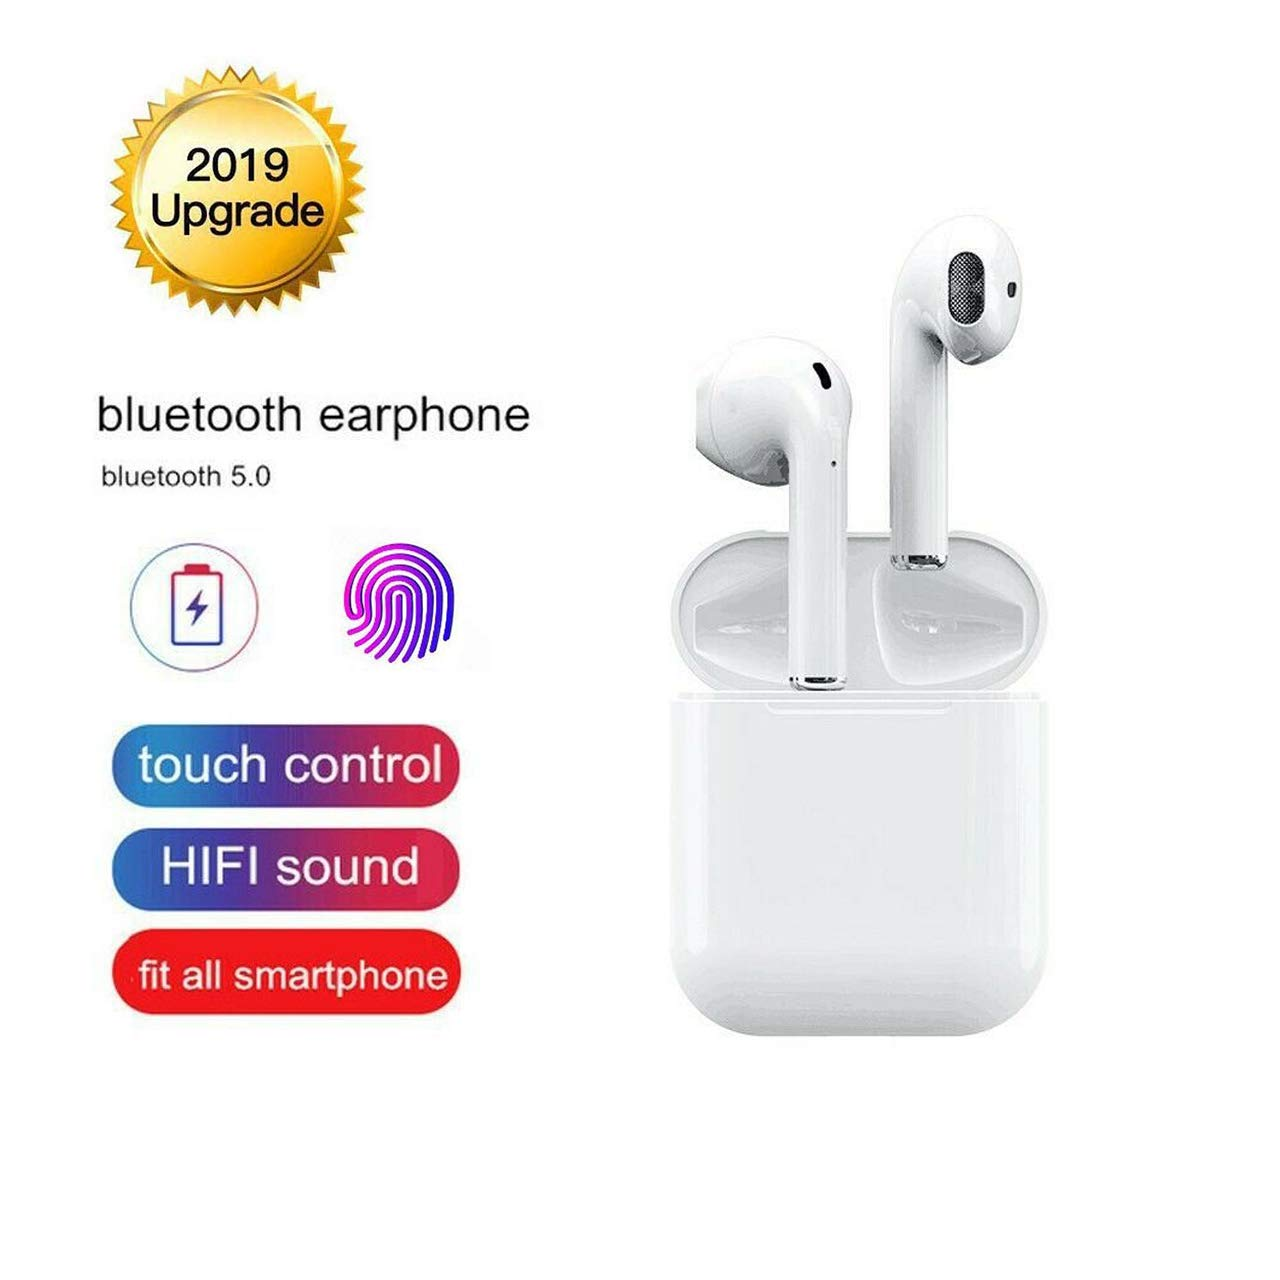 Christmas preset Bluetooth Headphone 5.0 Wireless Earbud 3D Stereo Headset with Microphone Noise Reduction Earplug IPX5 Waterproof Popup Window Automatic Pairing Quick Charging for iPhone Samsung S10